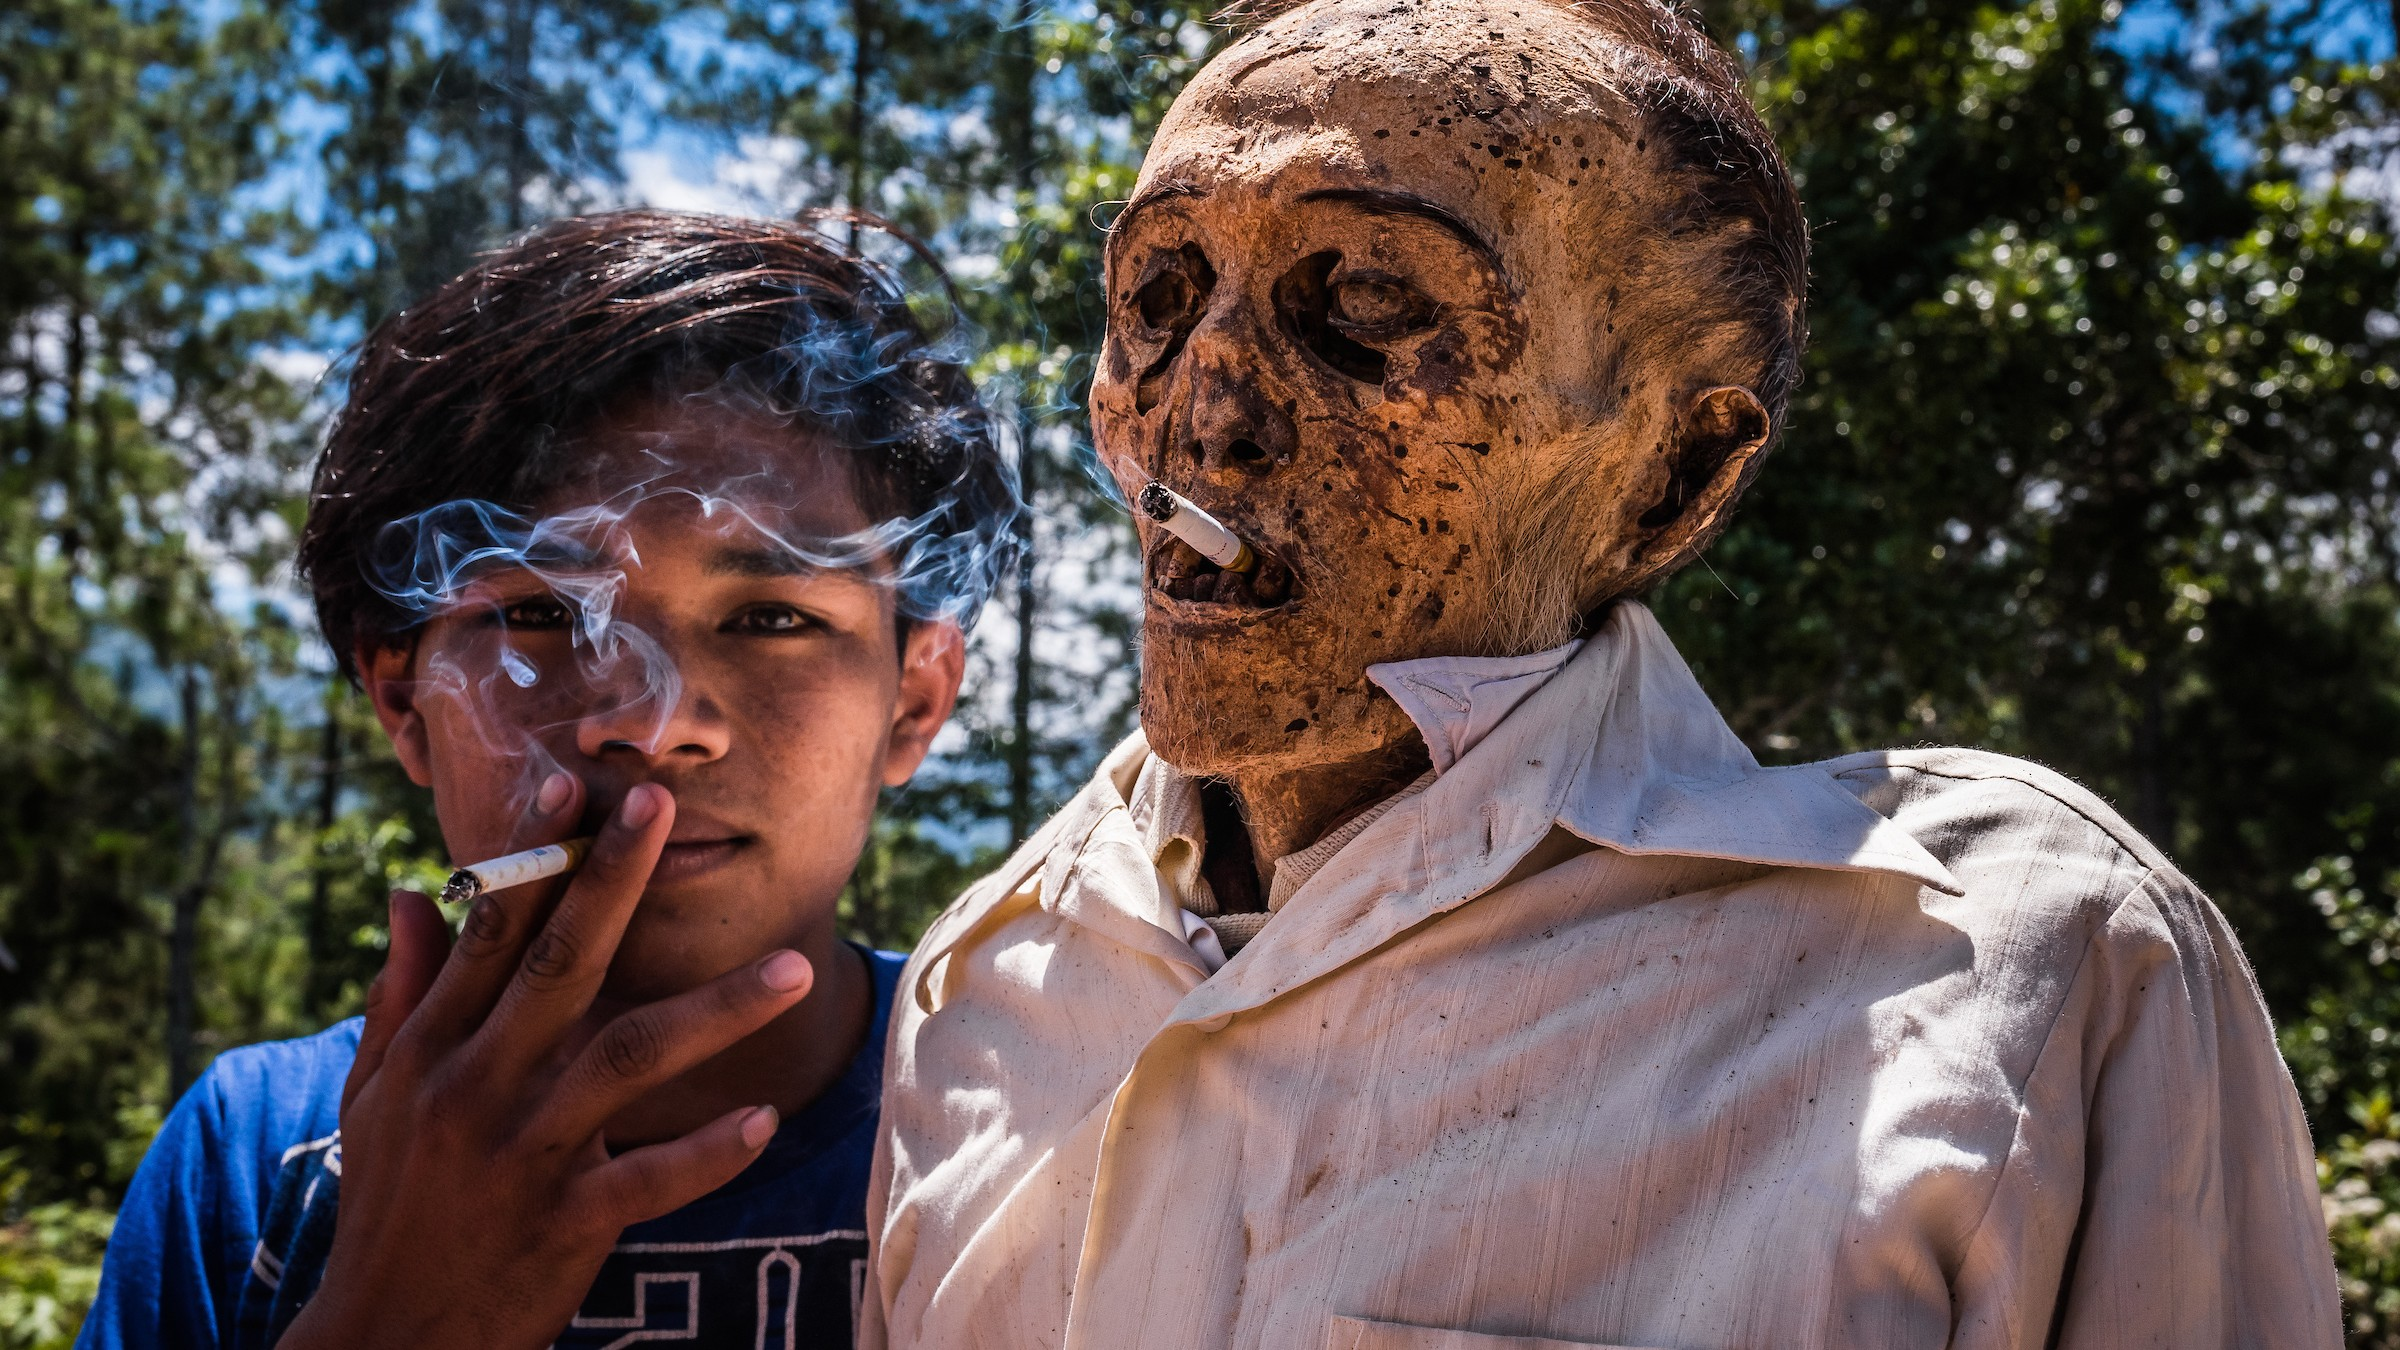 Living with the Dead: how Indonesia's Toraja people deal with their dead loved ones